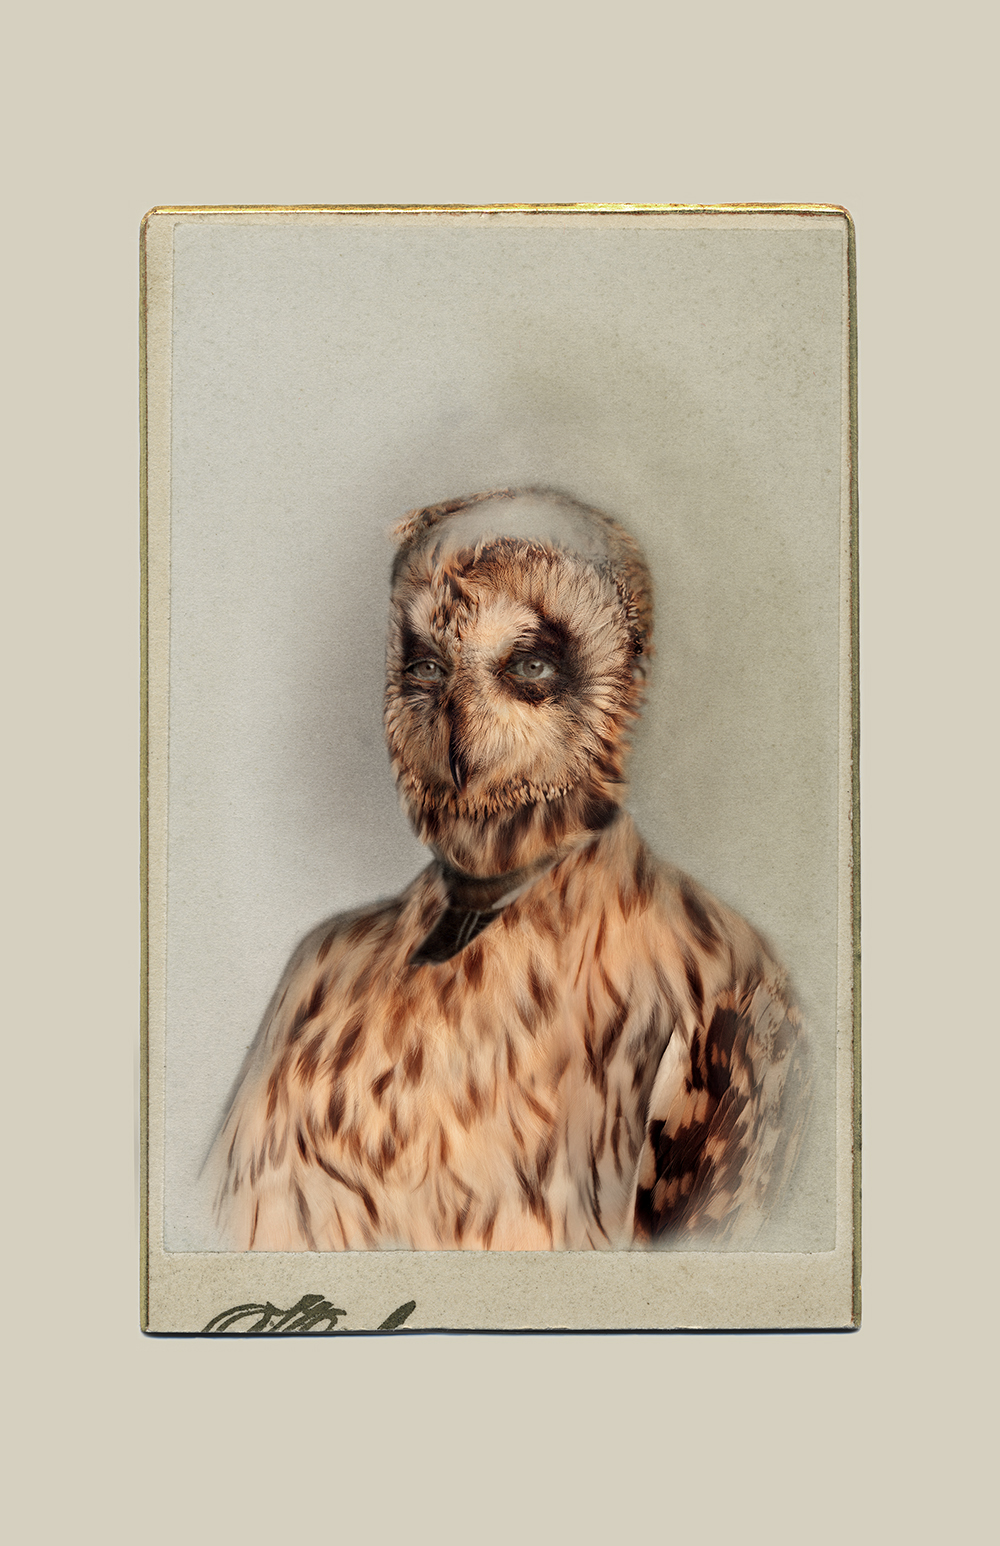 Aviary ©Sara Angelucci   Short-eared Owl/endangered , 2013 C-print, 22 x 33.5 inches